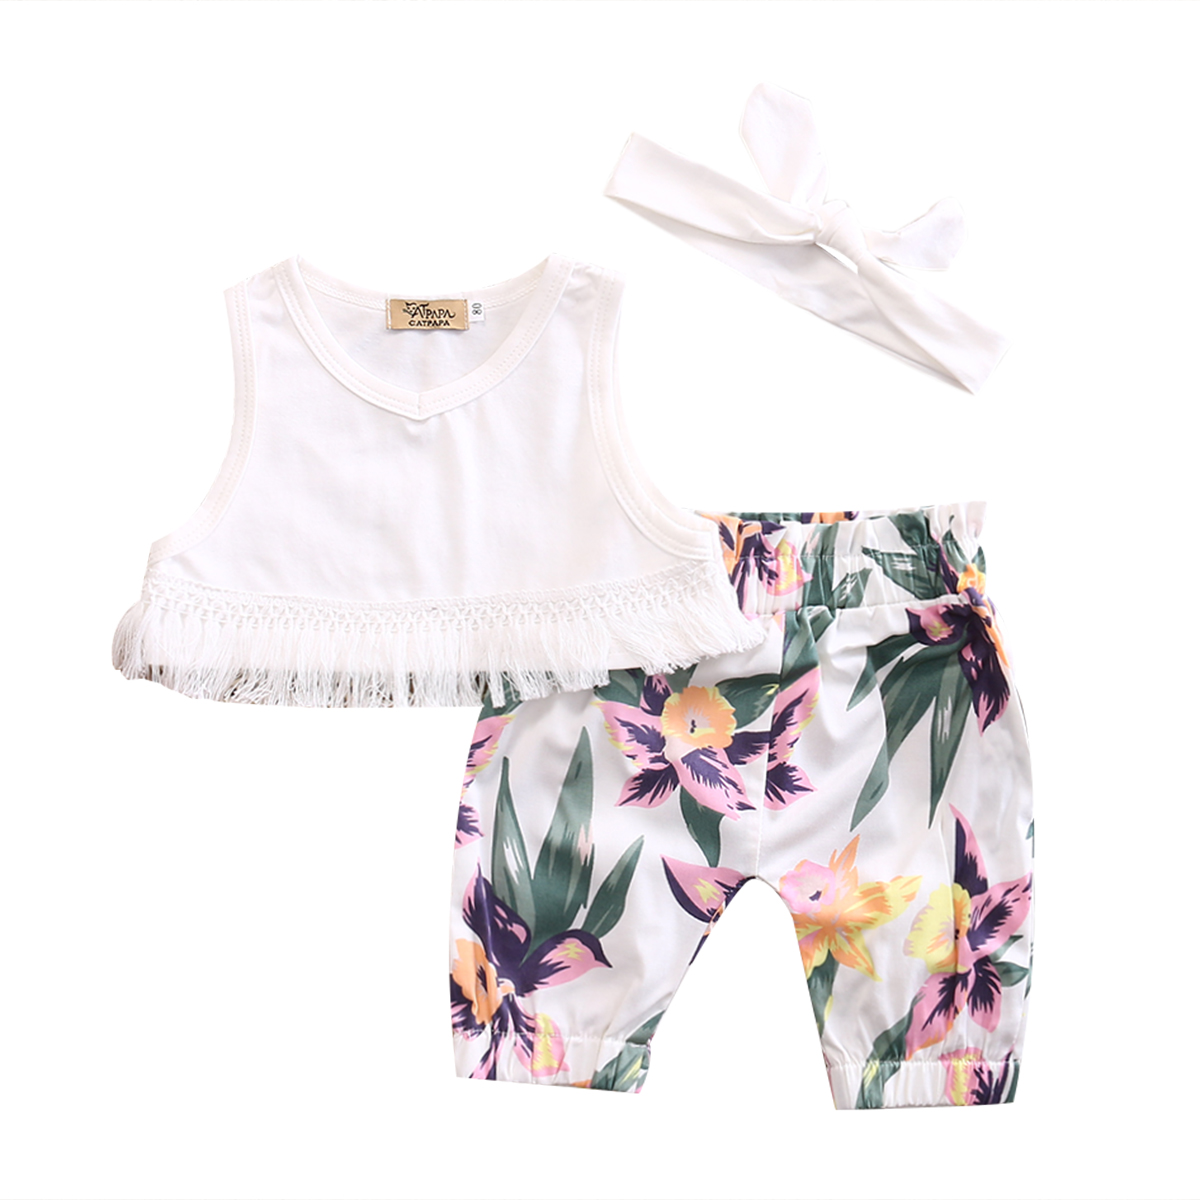 Baby Girl Tops Vest Sleeveless Tops Pants Cute Flower Headband 3pcs Outfits Clothing Cute Newborn Baby Girls Clothes Set Floral